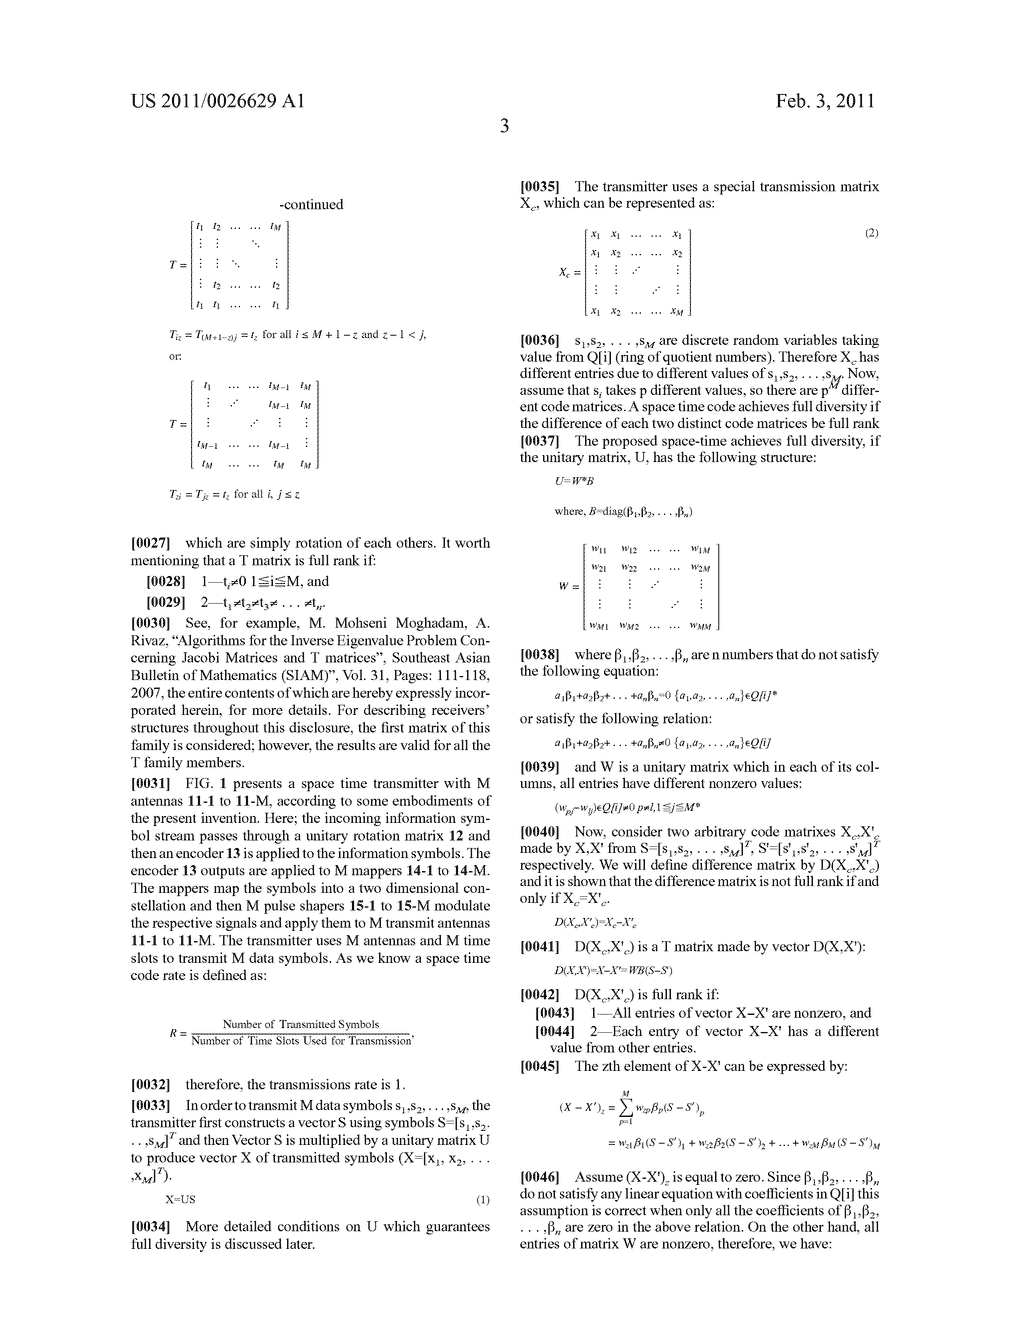 SYSTEM AND METHOD FOR ENCODING AND DECODING OF SPACE-TIME BLOCK CODES IN DATA COMMUNICATION - diagram, schematic, and image 12